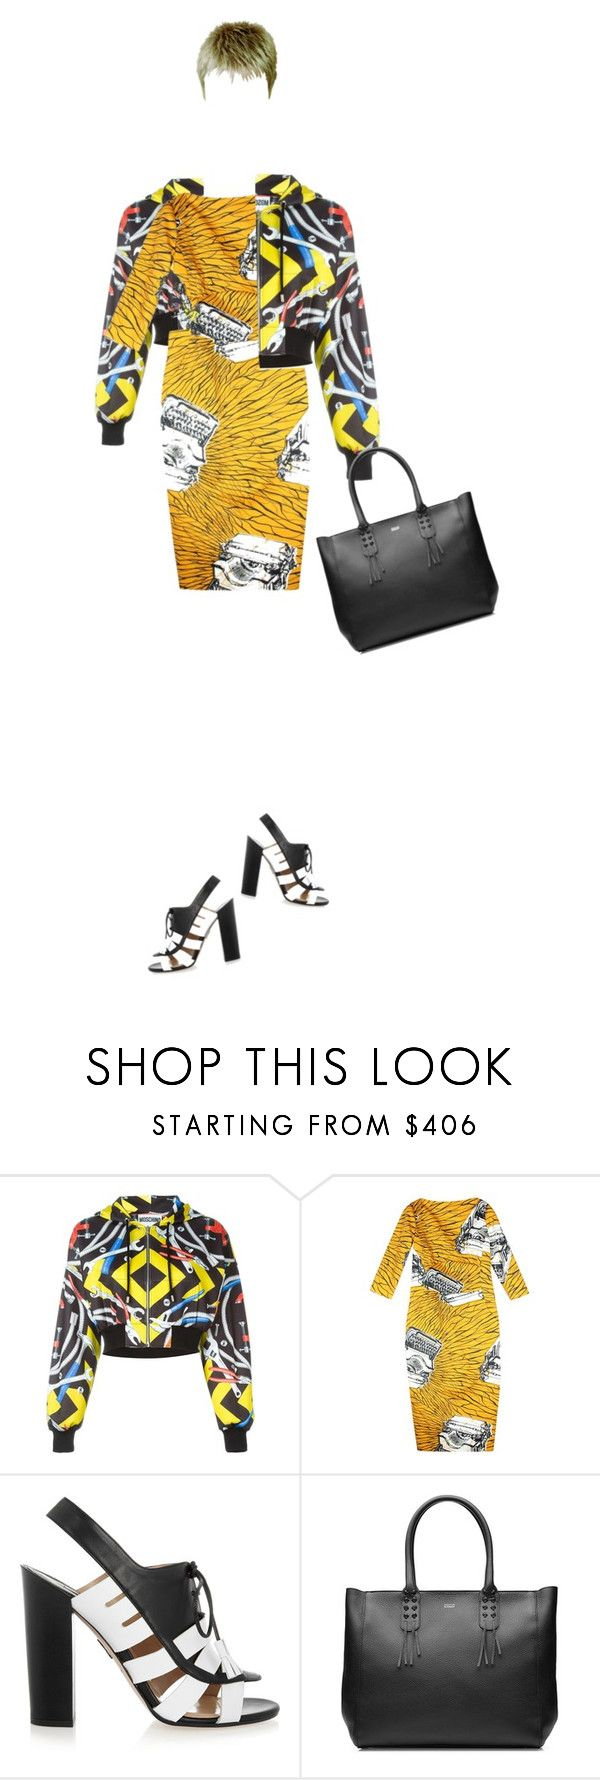 """suchan:155"" by suchan ❤ liked on Polyvore featuring Moschino, Stella Jean, Paul Andrew, Steffen Schraut and CroppedHoodie"